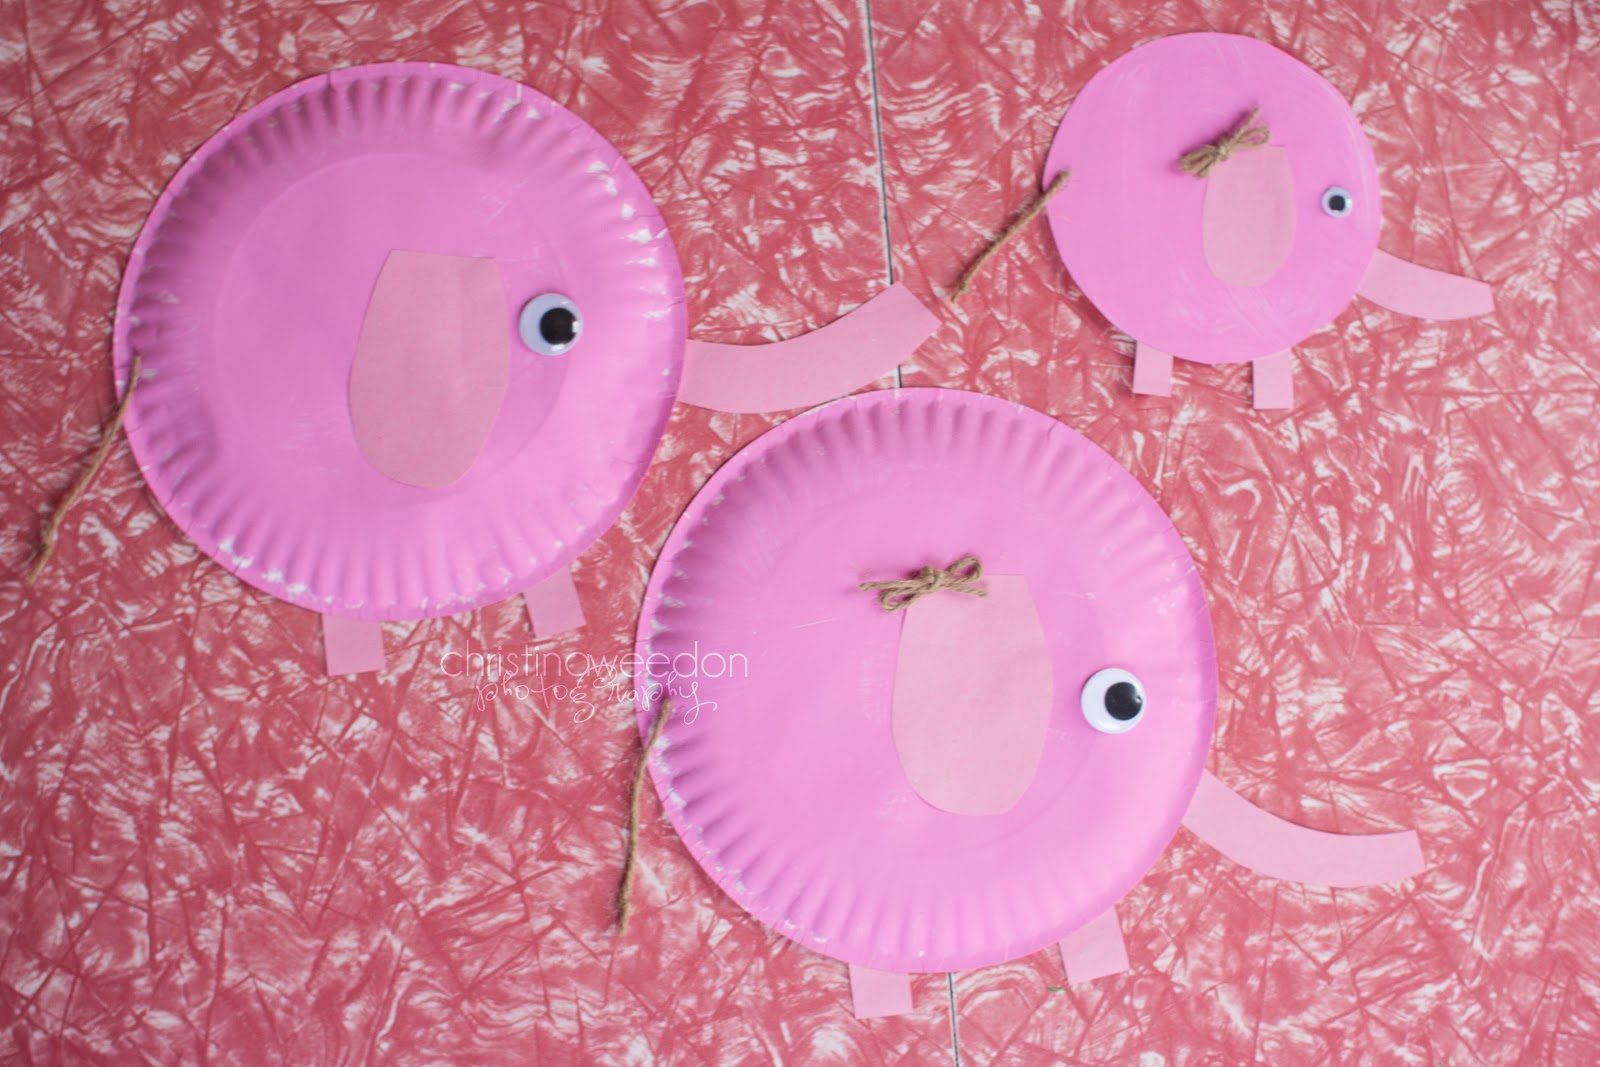 Homeschool The Letter E crafts preschool toddler activities elephant eagle : paper plate elephant craft - pezcame.com